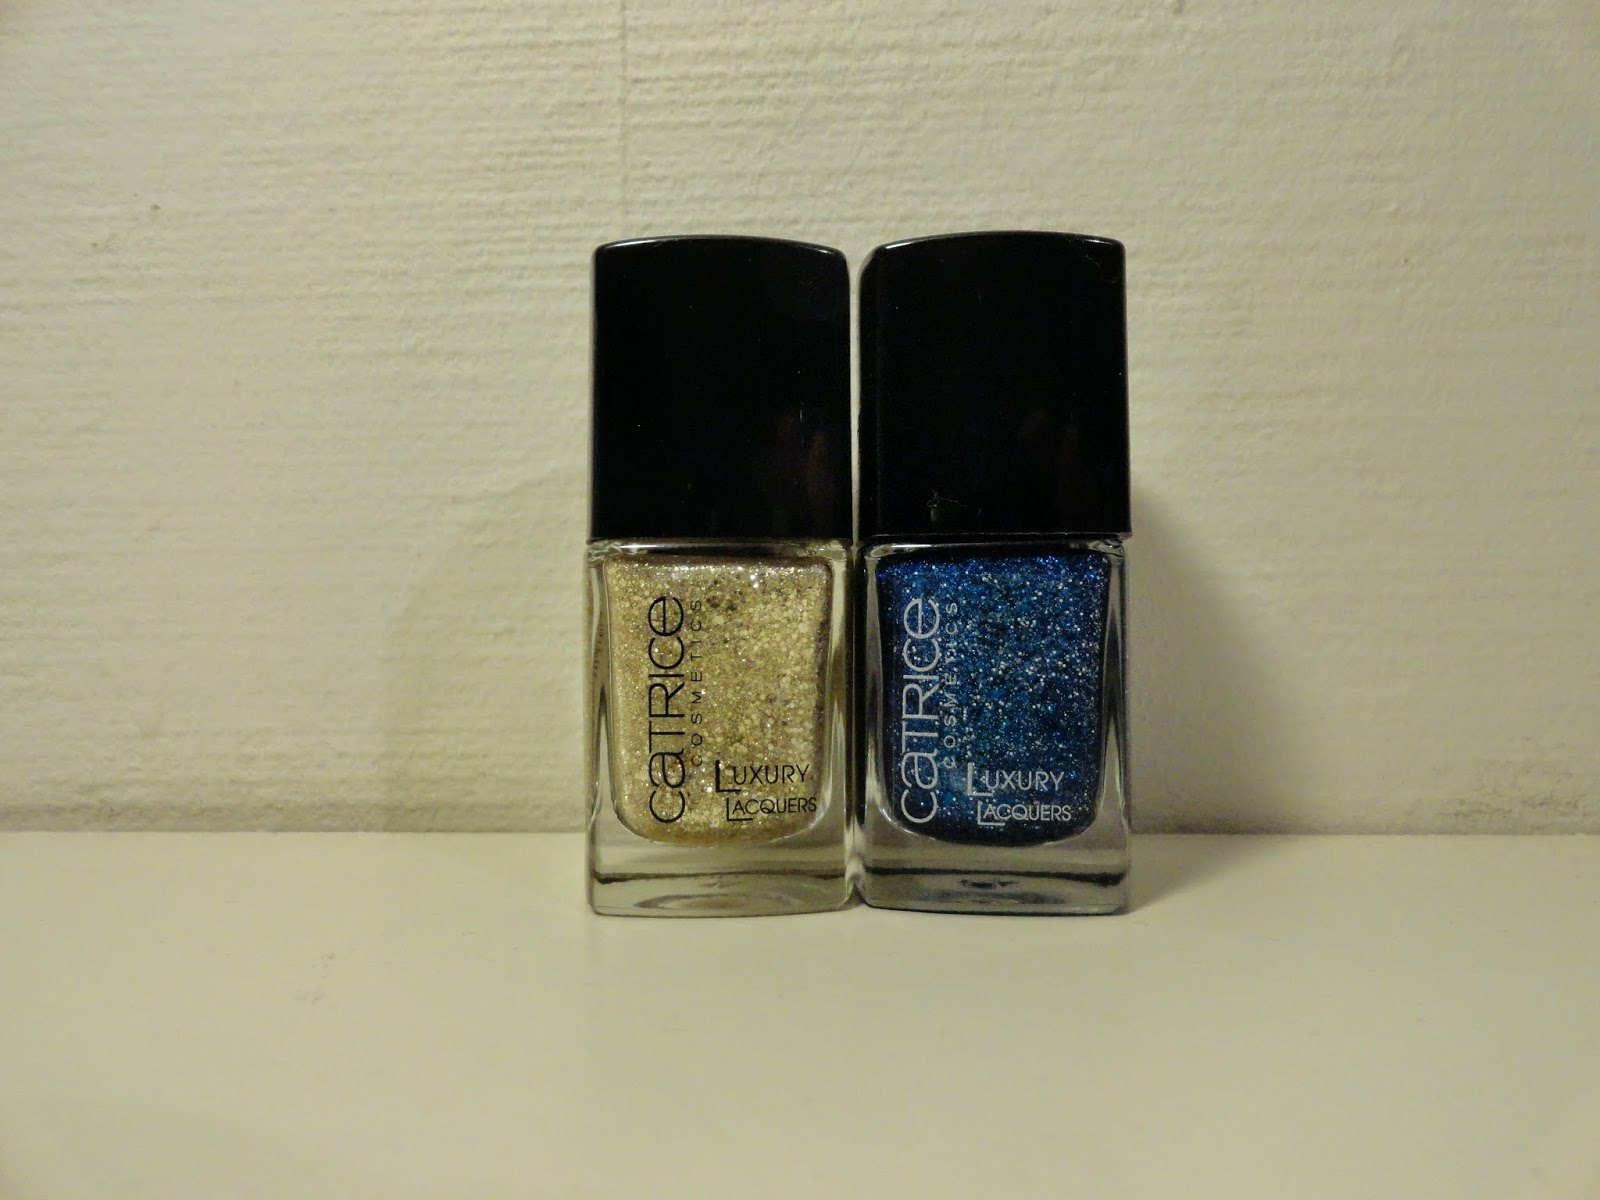 Clothes & Dreams: Shoplog: Forever21, Kruidvat and New Look: Catrice Luxury Lacquers 07 Stars & Stories and 02 Blue Skyfall